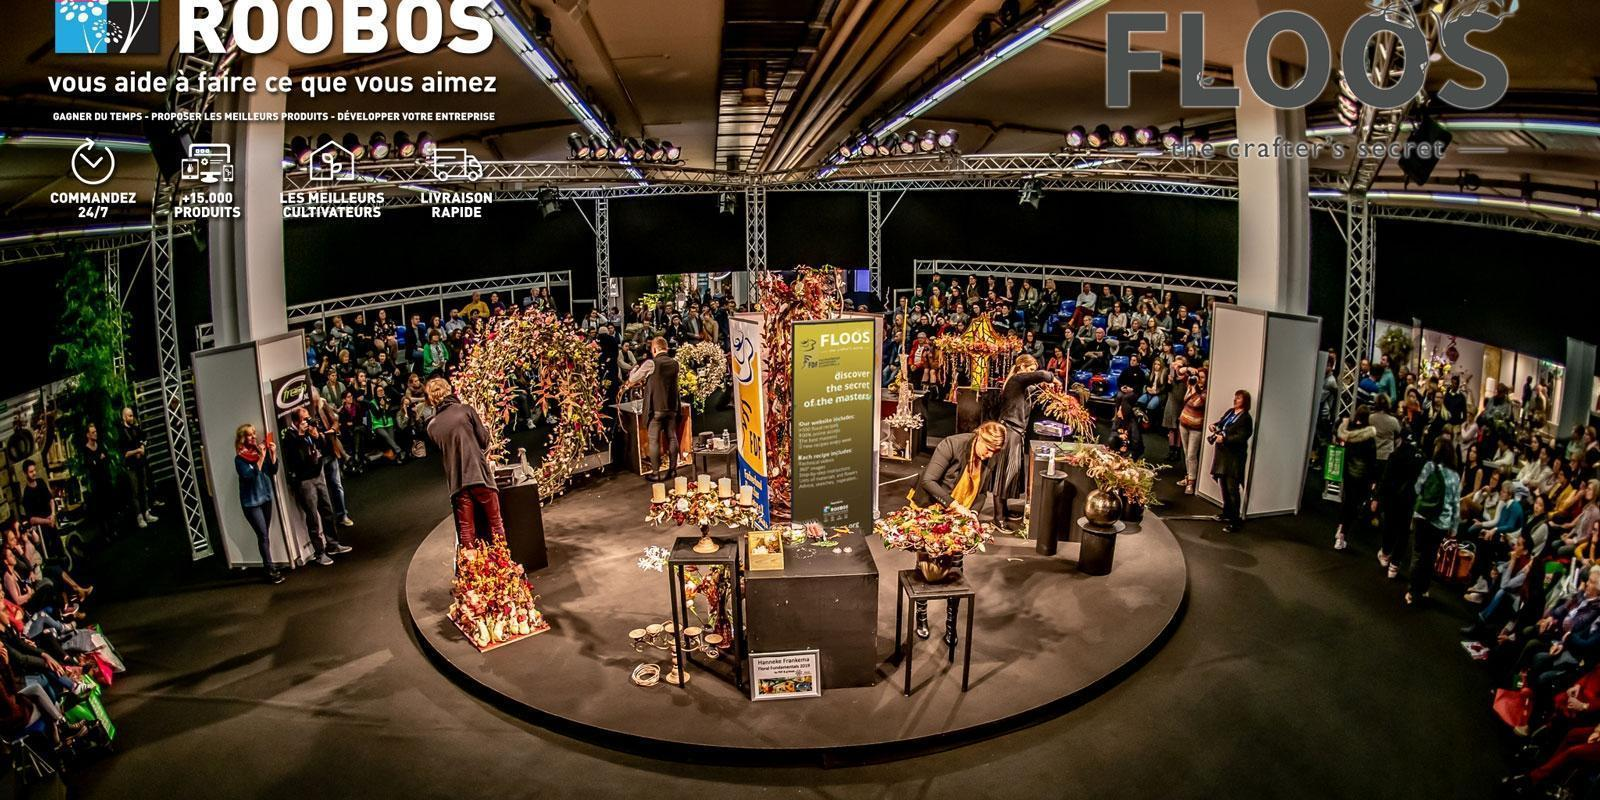 Roobos Wholesaler for flowers and plants at IPM Essen